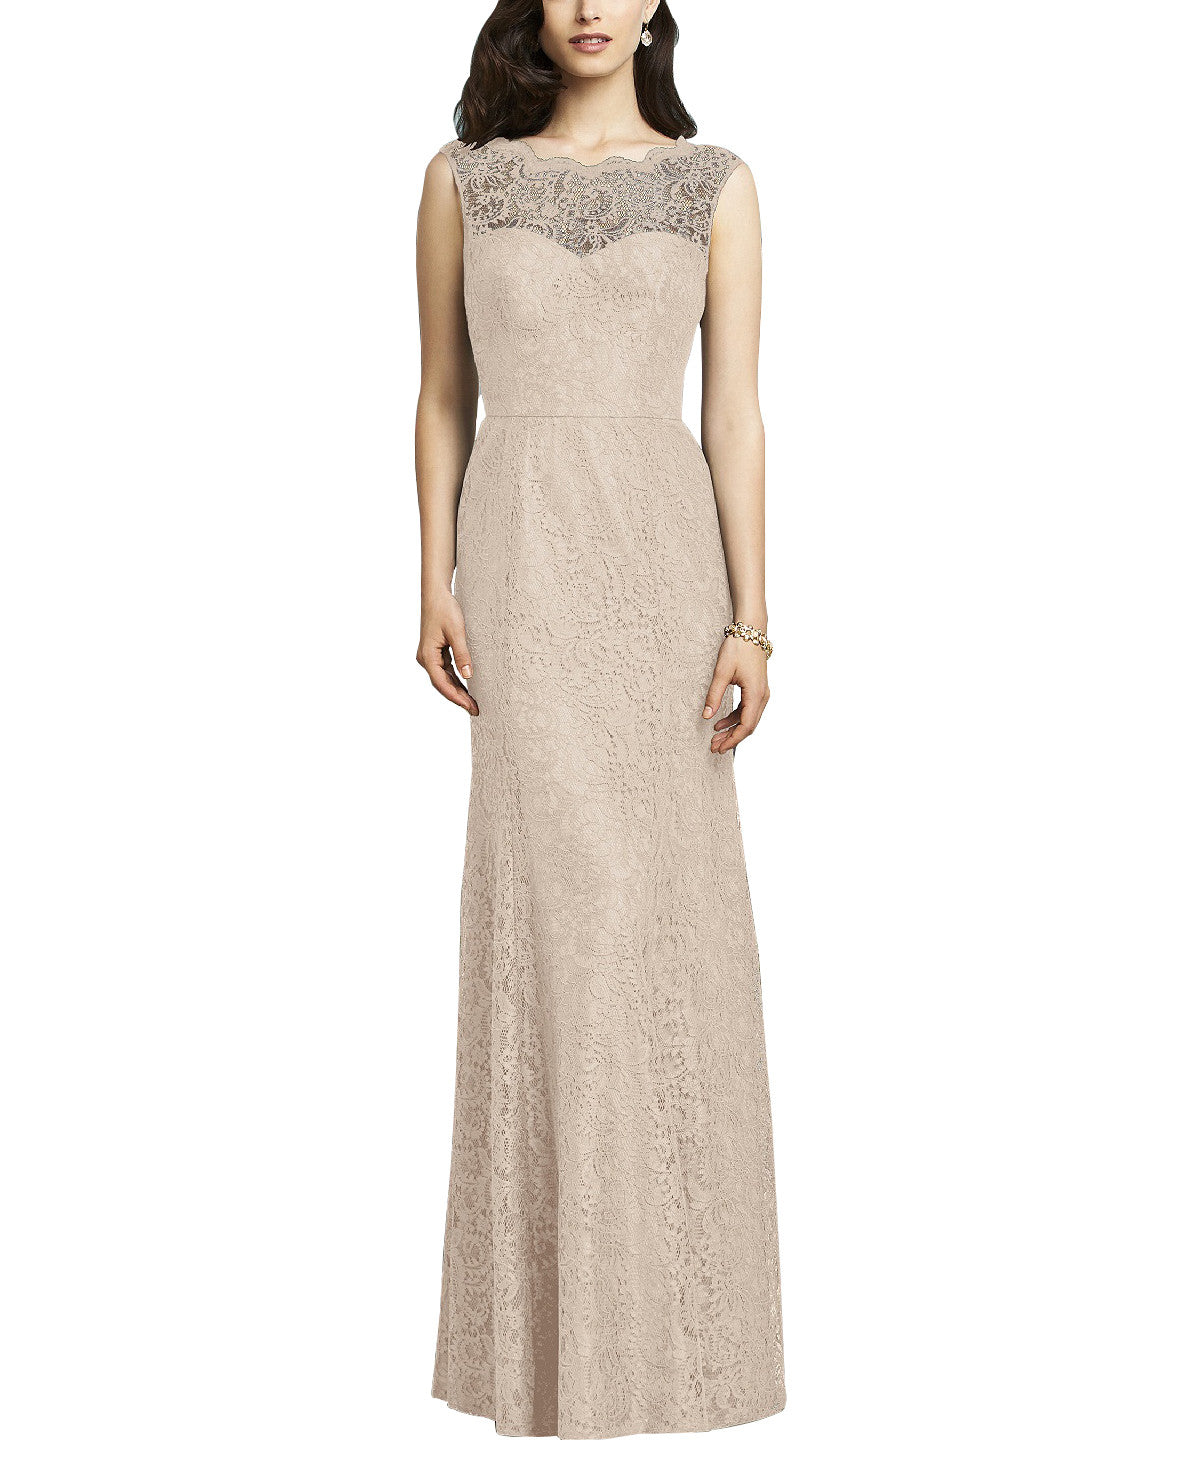 Dessy collection bridesmaids dress style 2940 bridesmaid dress dessy collection style 2940 ombrellifo Images